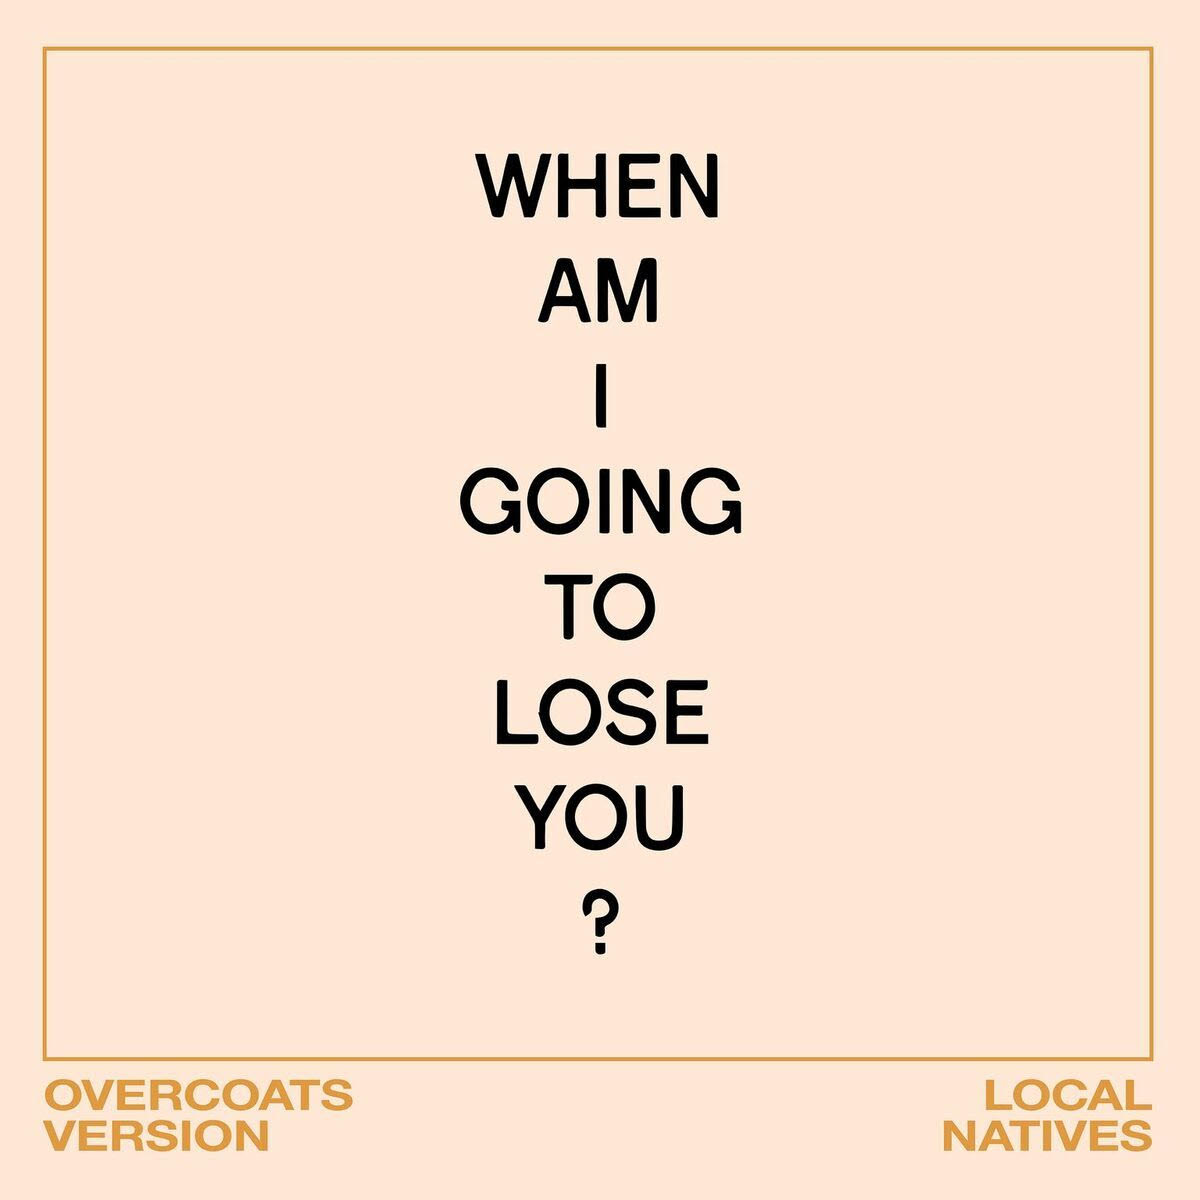 """Local Natives have released a new version of """"When Am I Gonna Lose You,"""" this time with the touches of Brooklyn duo Overcoats"""